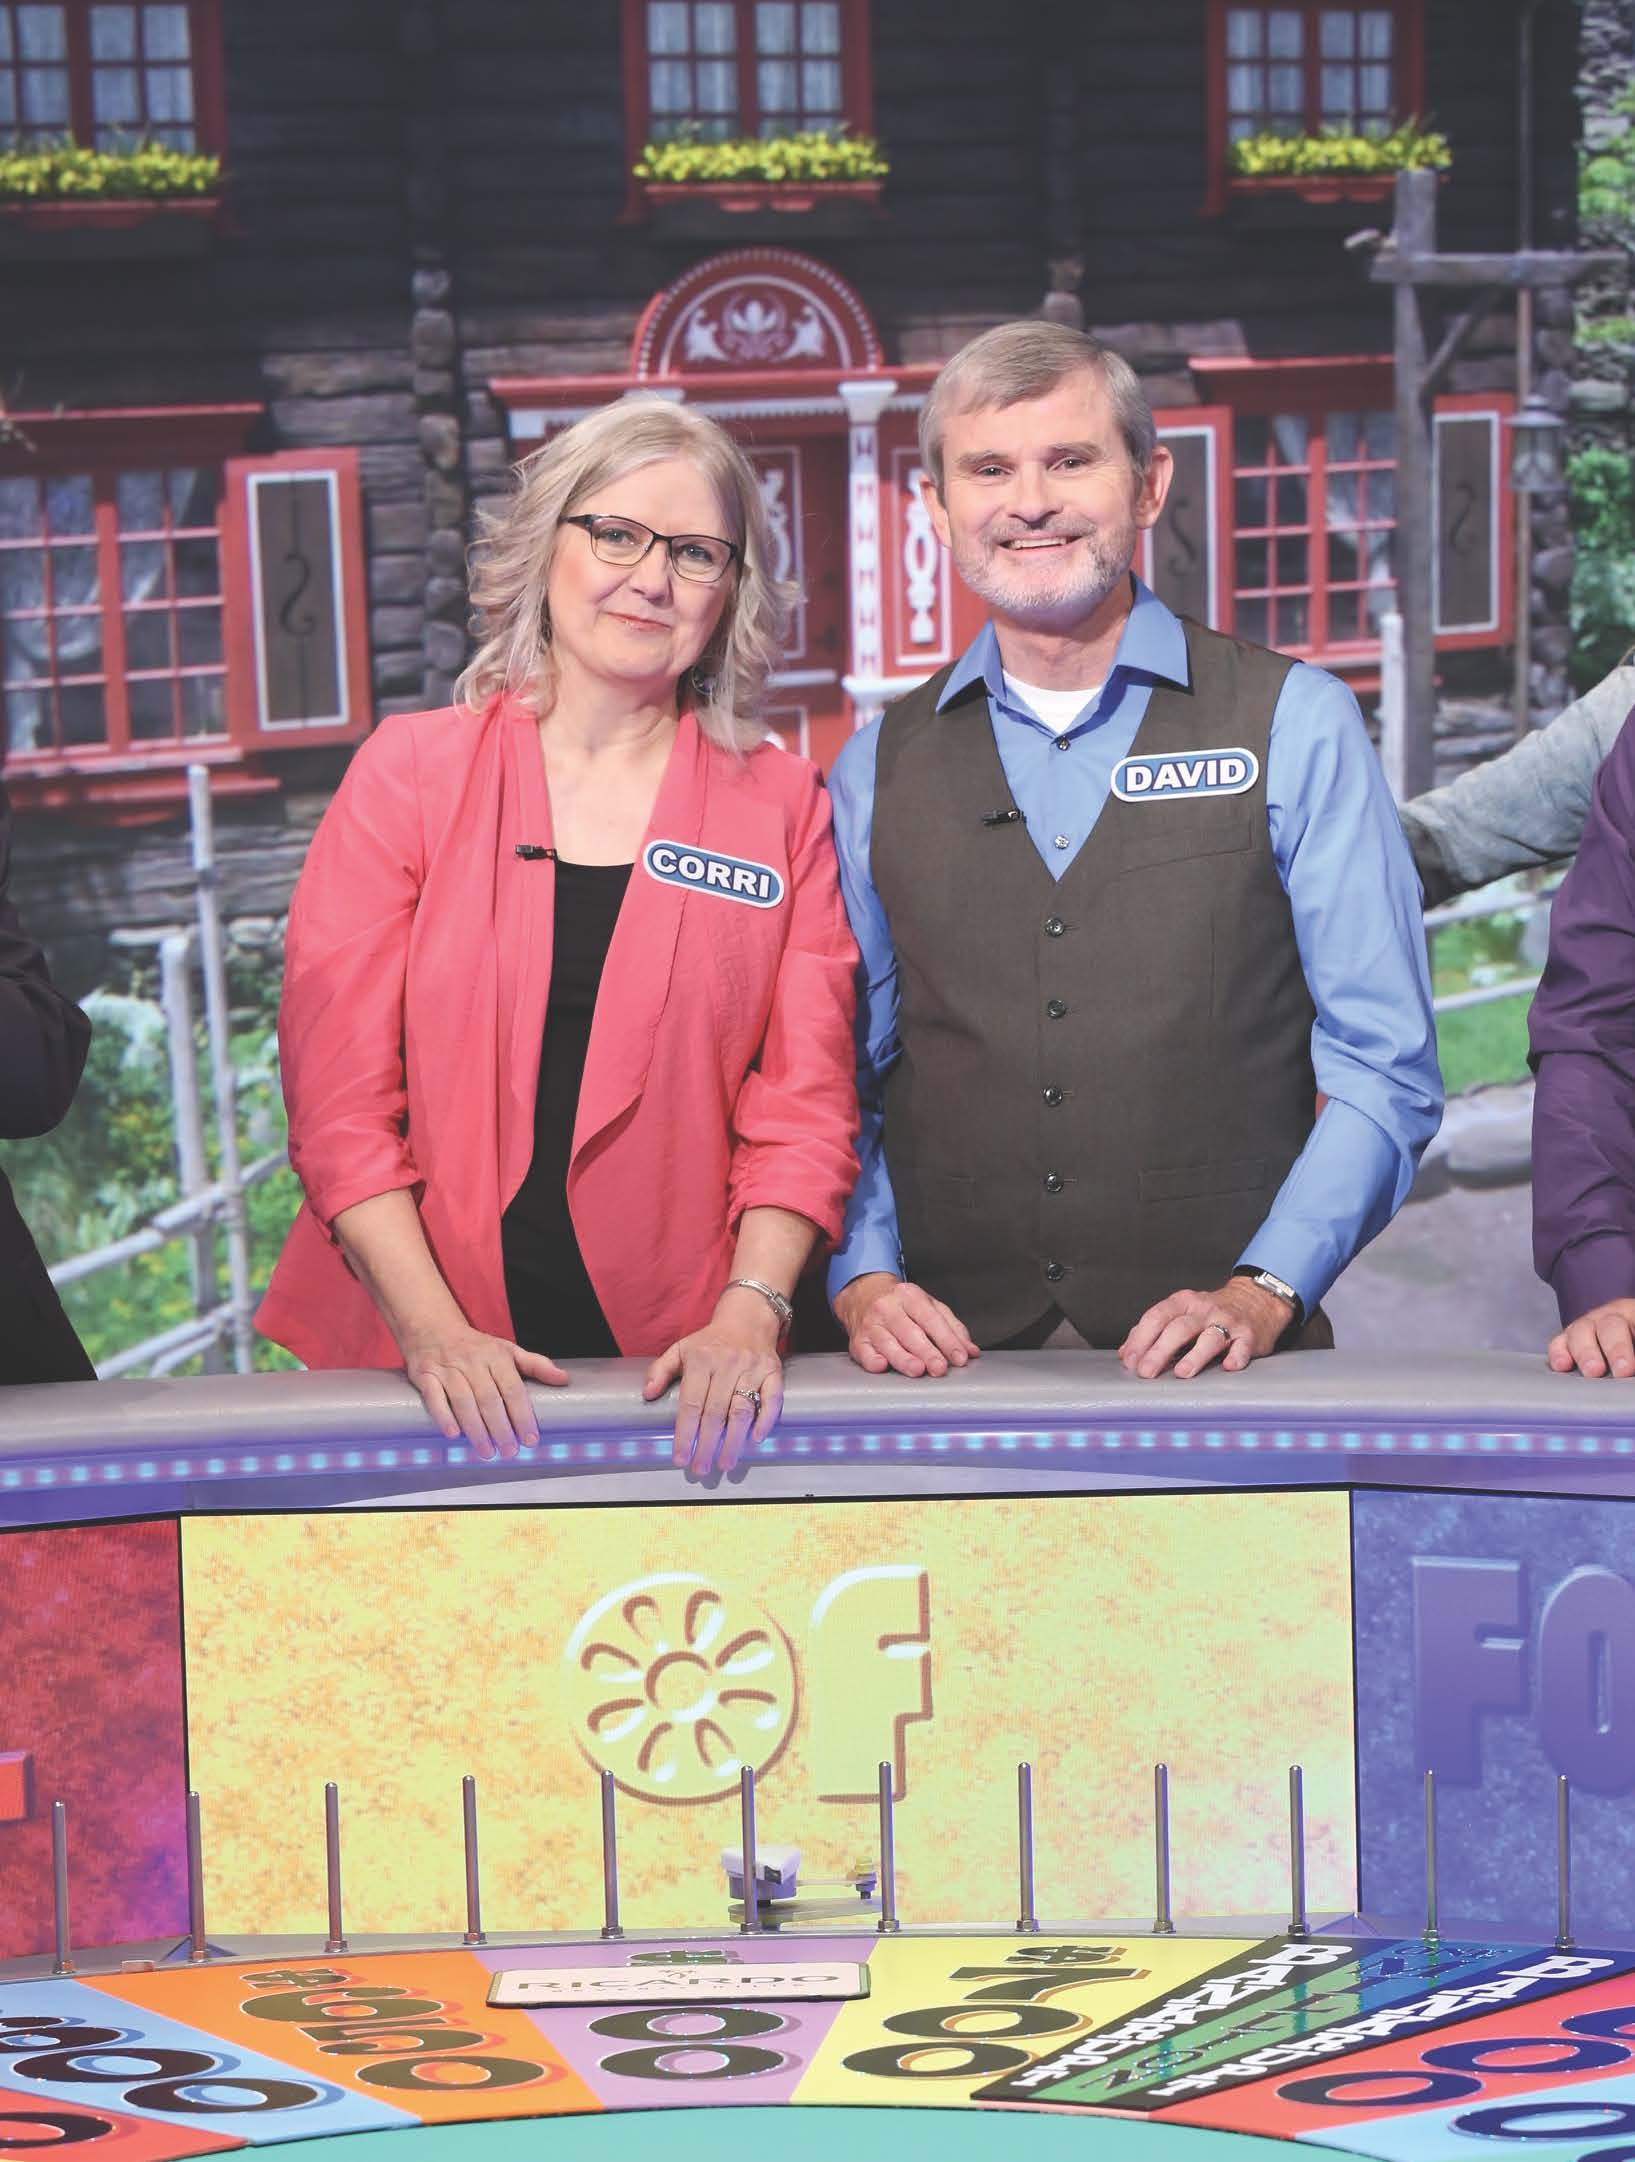 Cornelia and David Wells are contestants on Wheel of Fortune / Photo courtesy Cornelia Wells